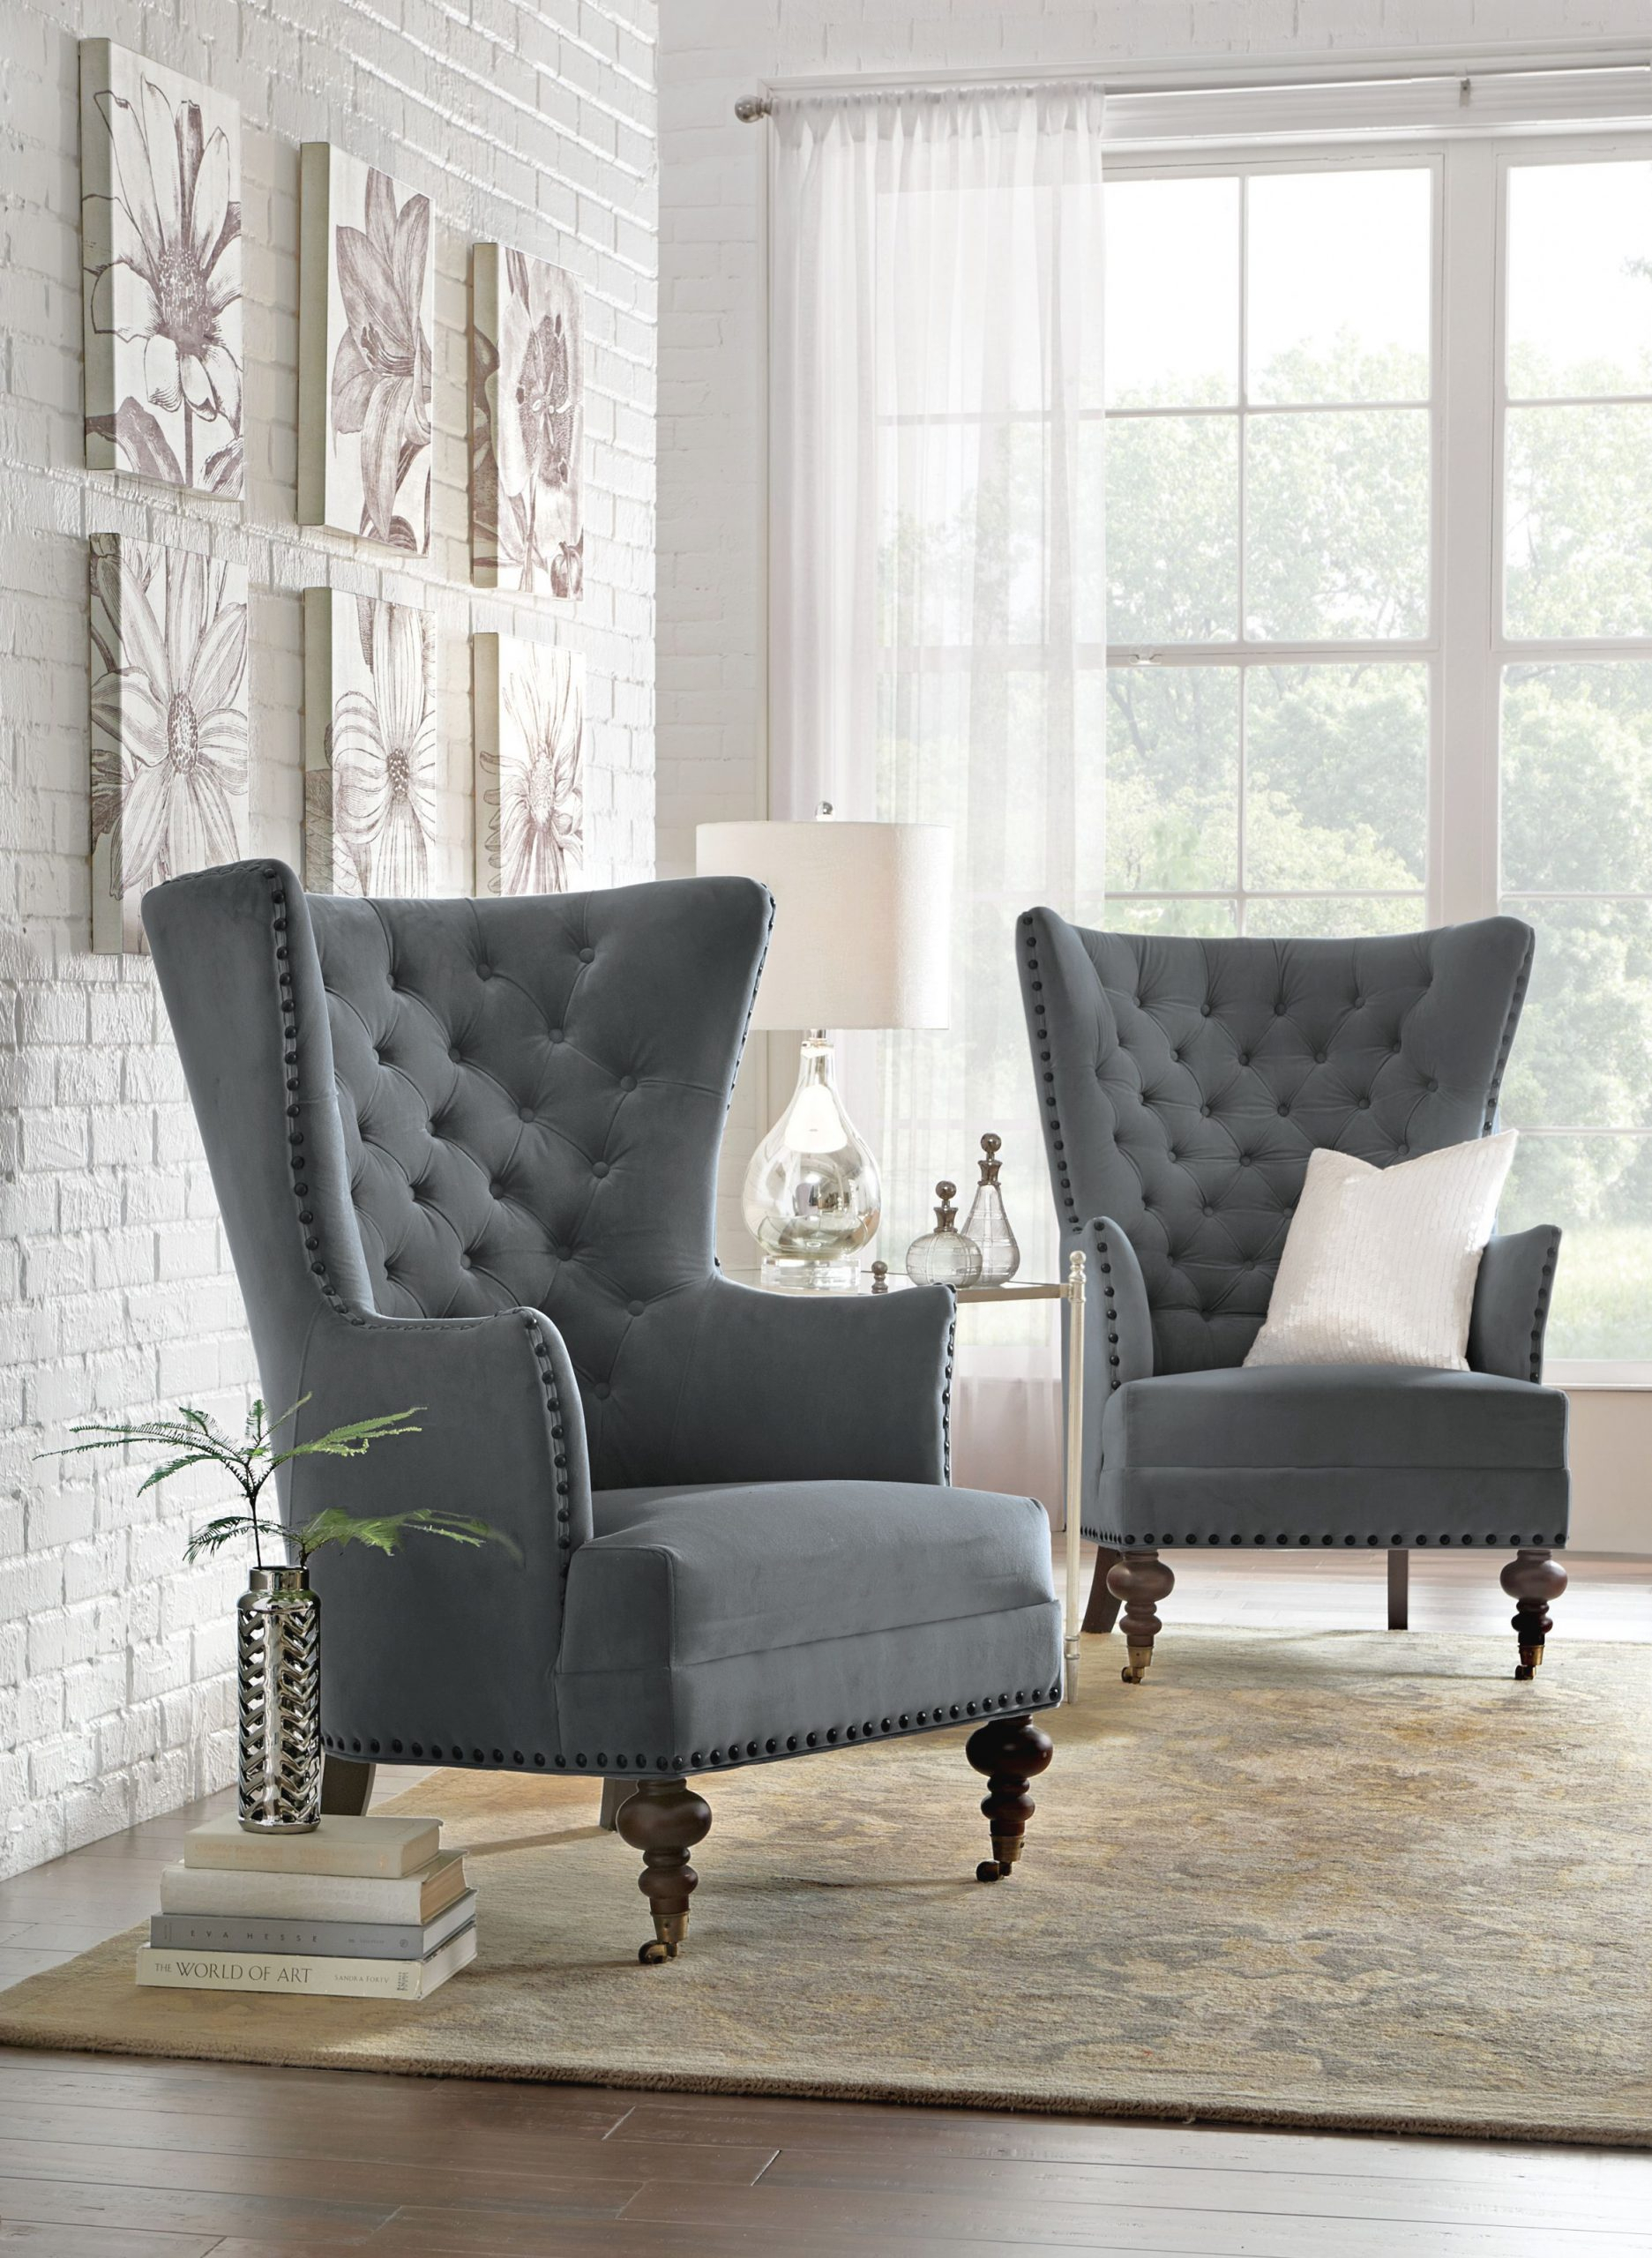 15 Beautiful Ideas Sitting Chairs For Living Room – Awesome Regarding Louisiana Barrel Chairs And Ottoman (View 11 of 15)